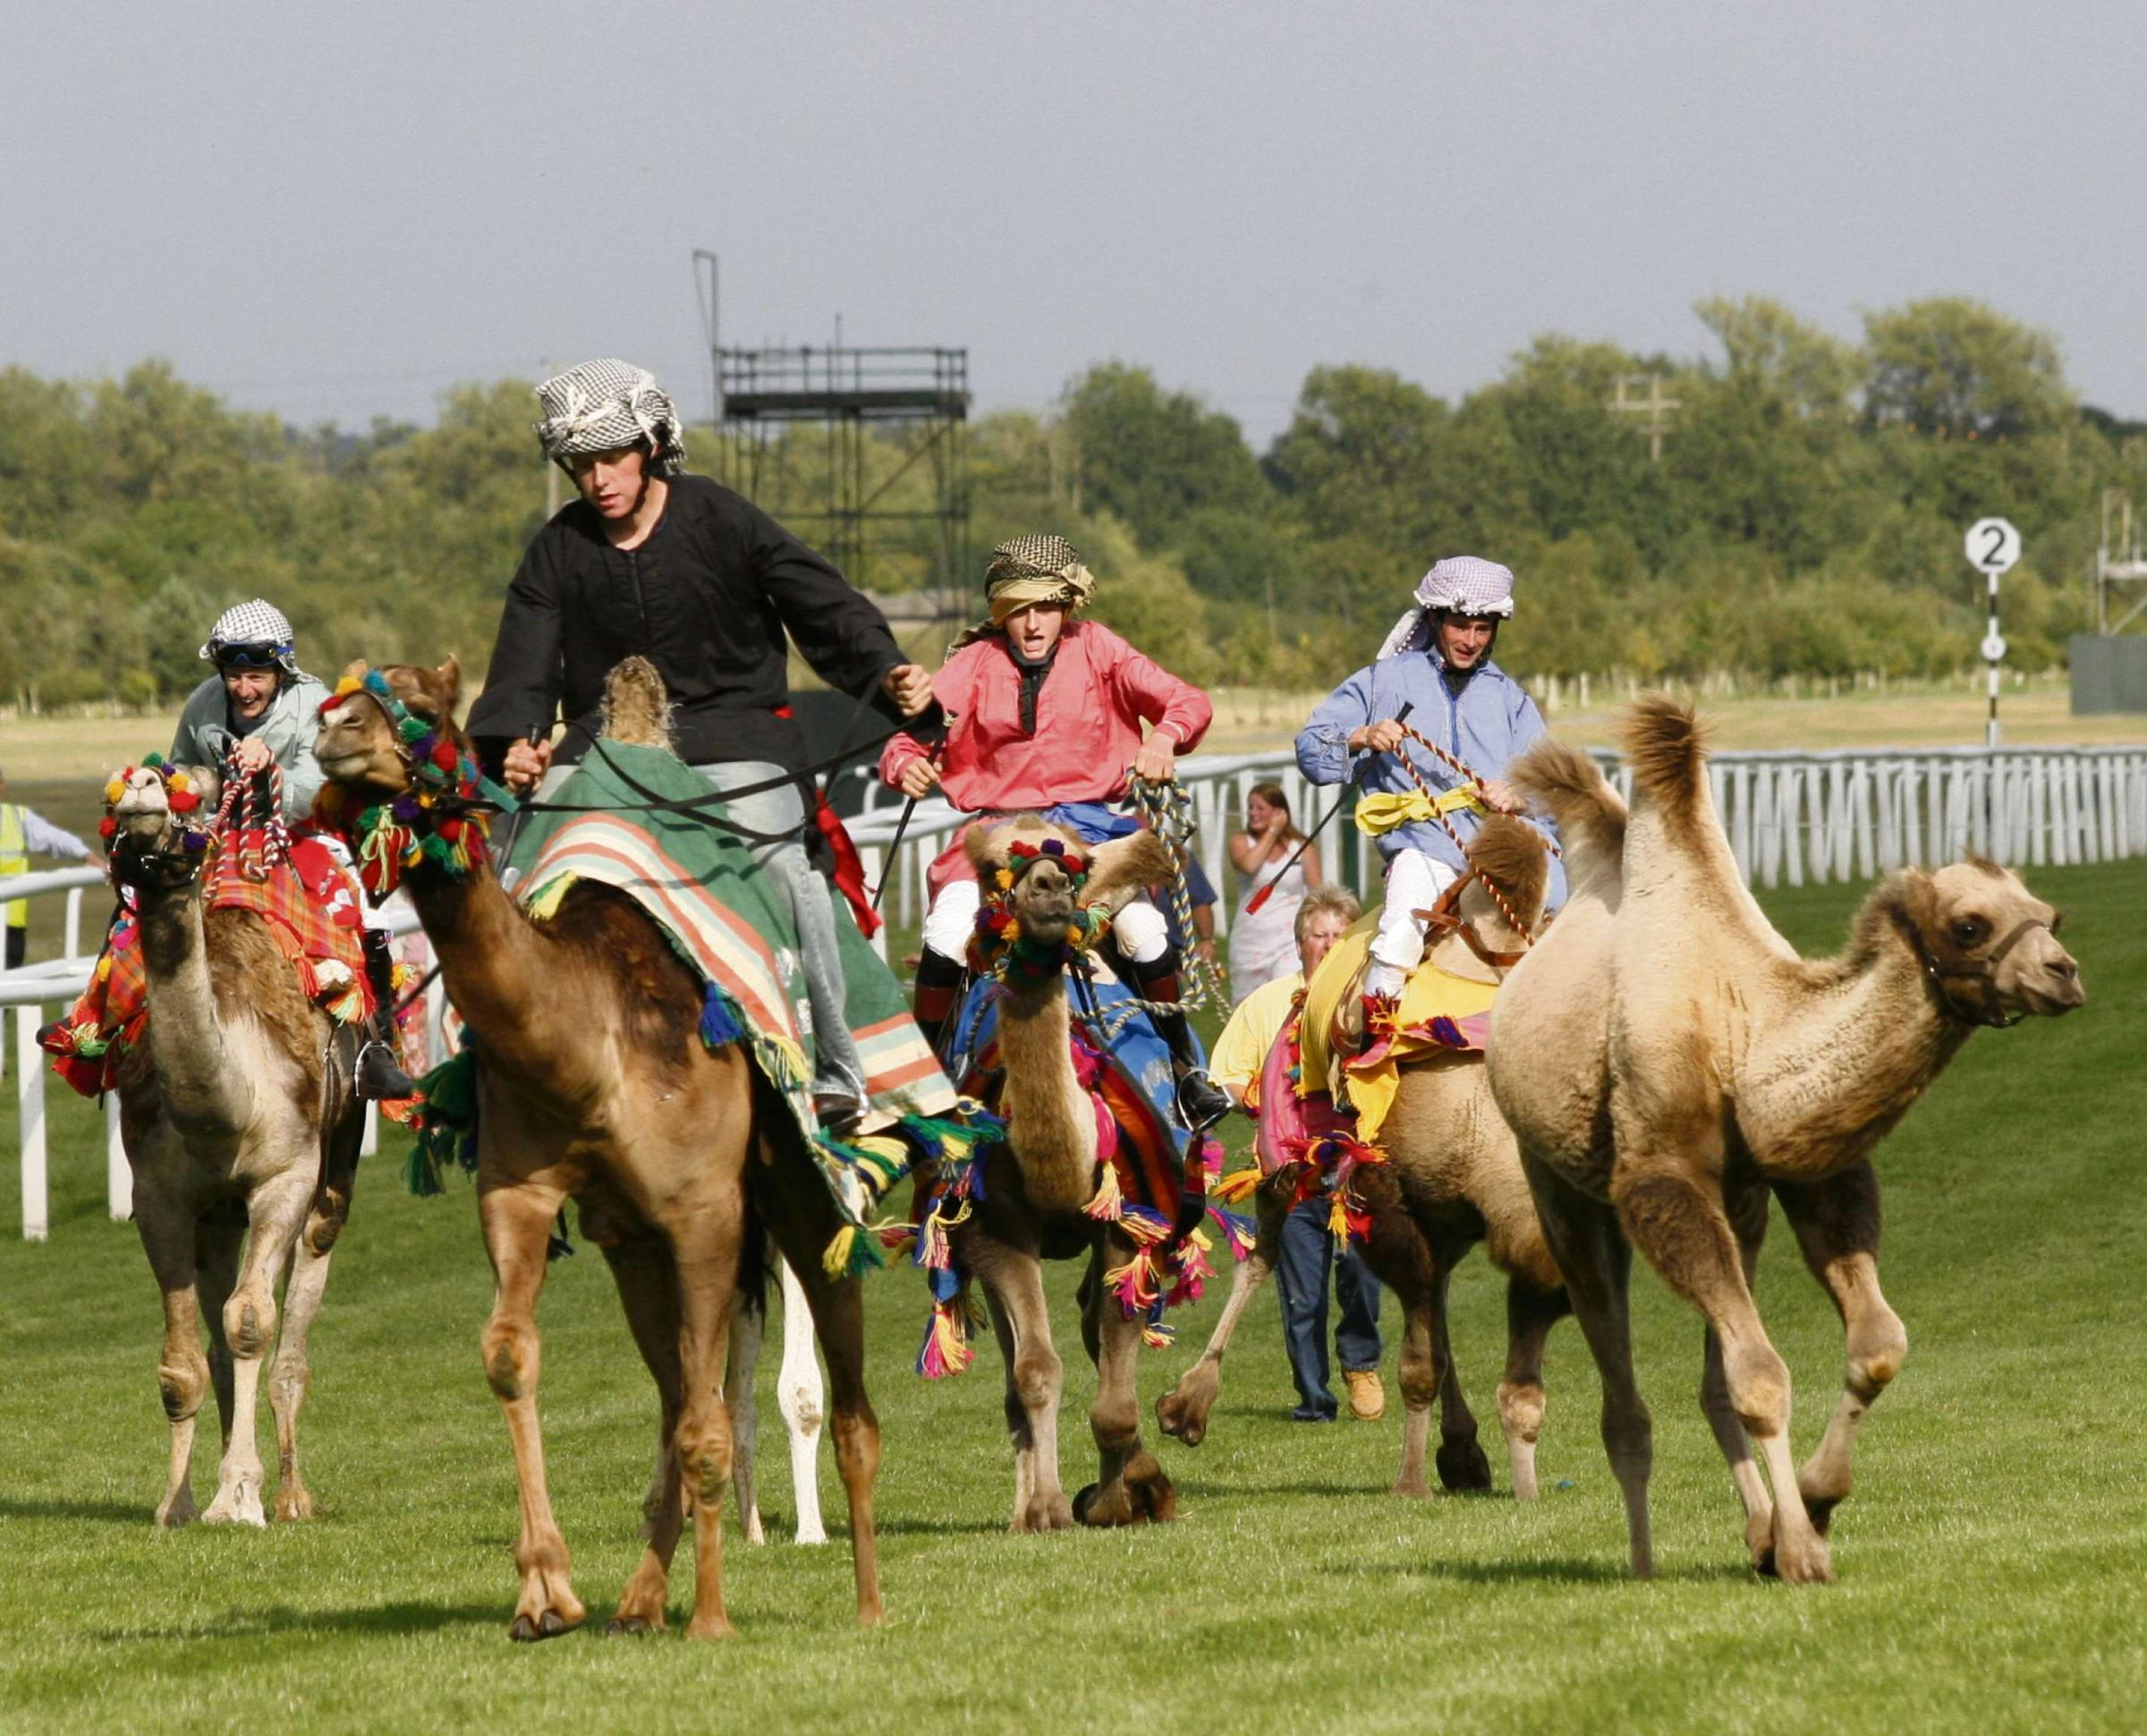 Camel racing has proved popular at other events across the country.